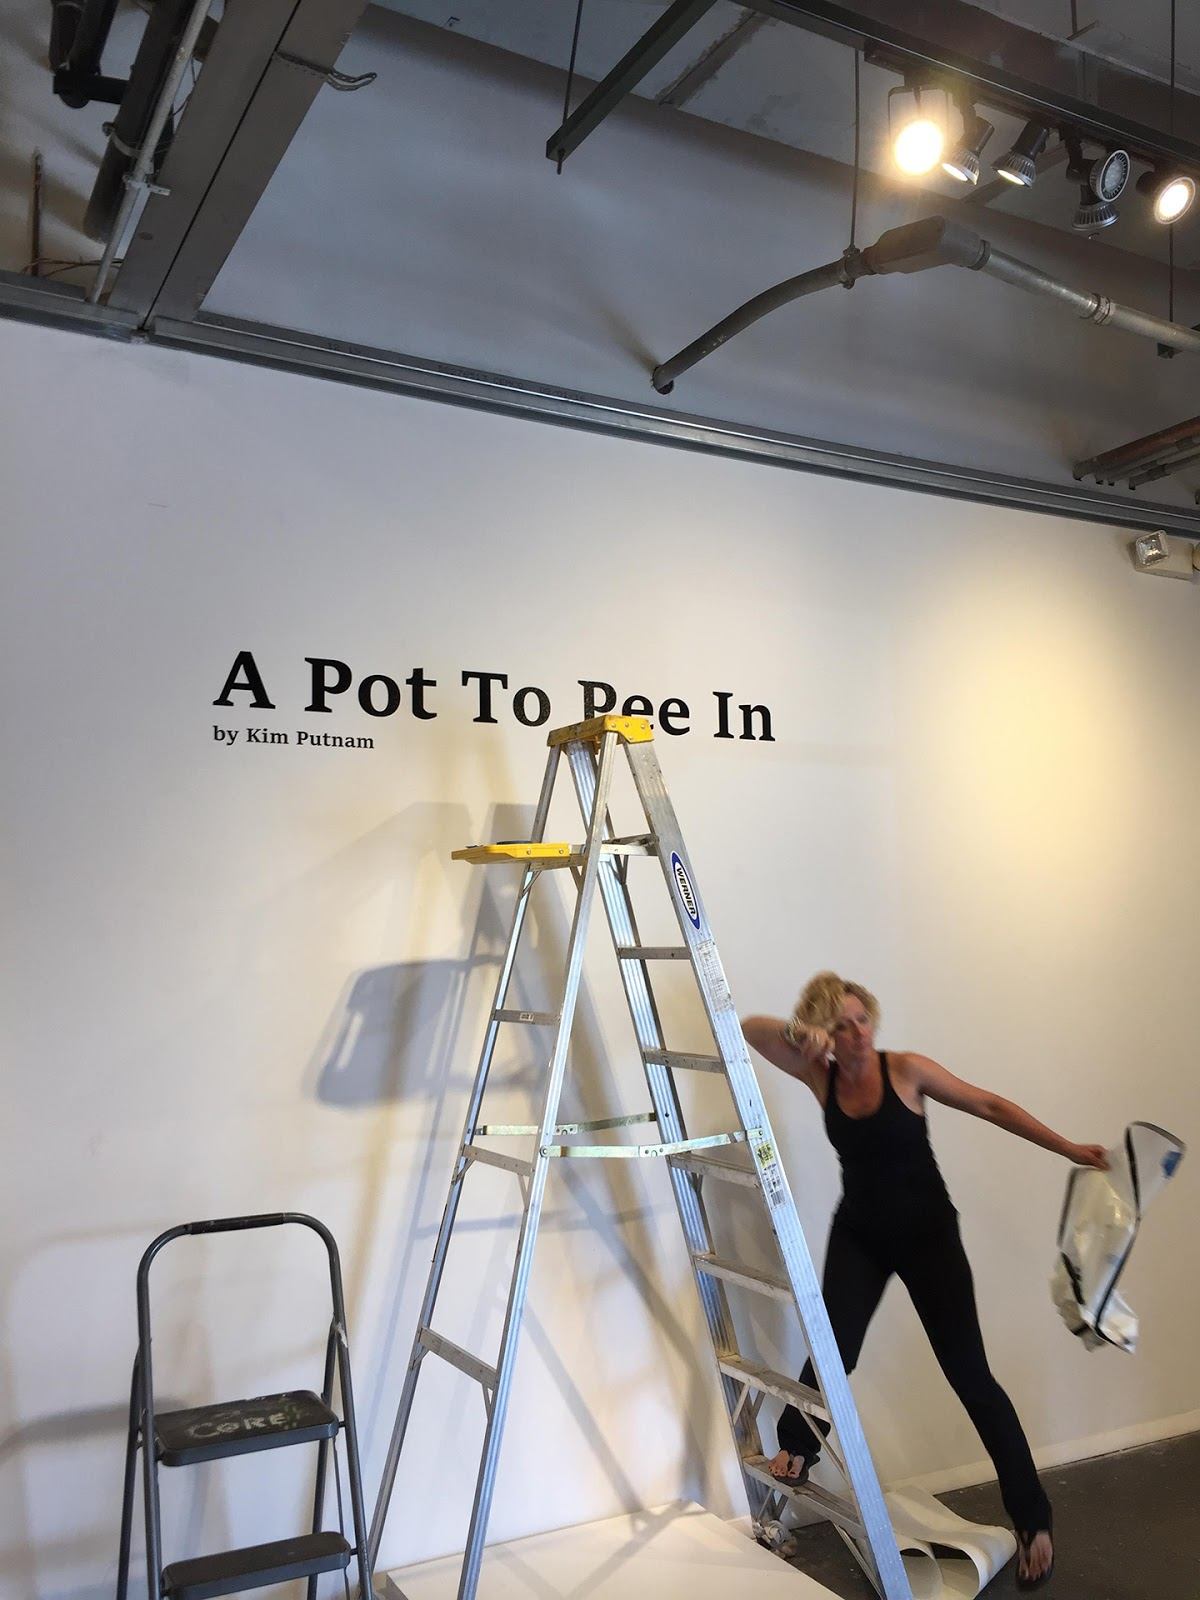 Pot to piss in saying